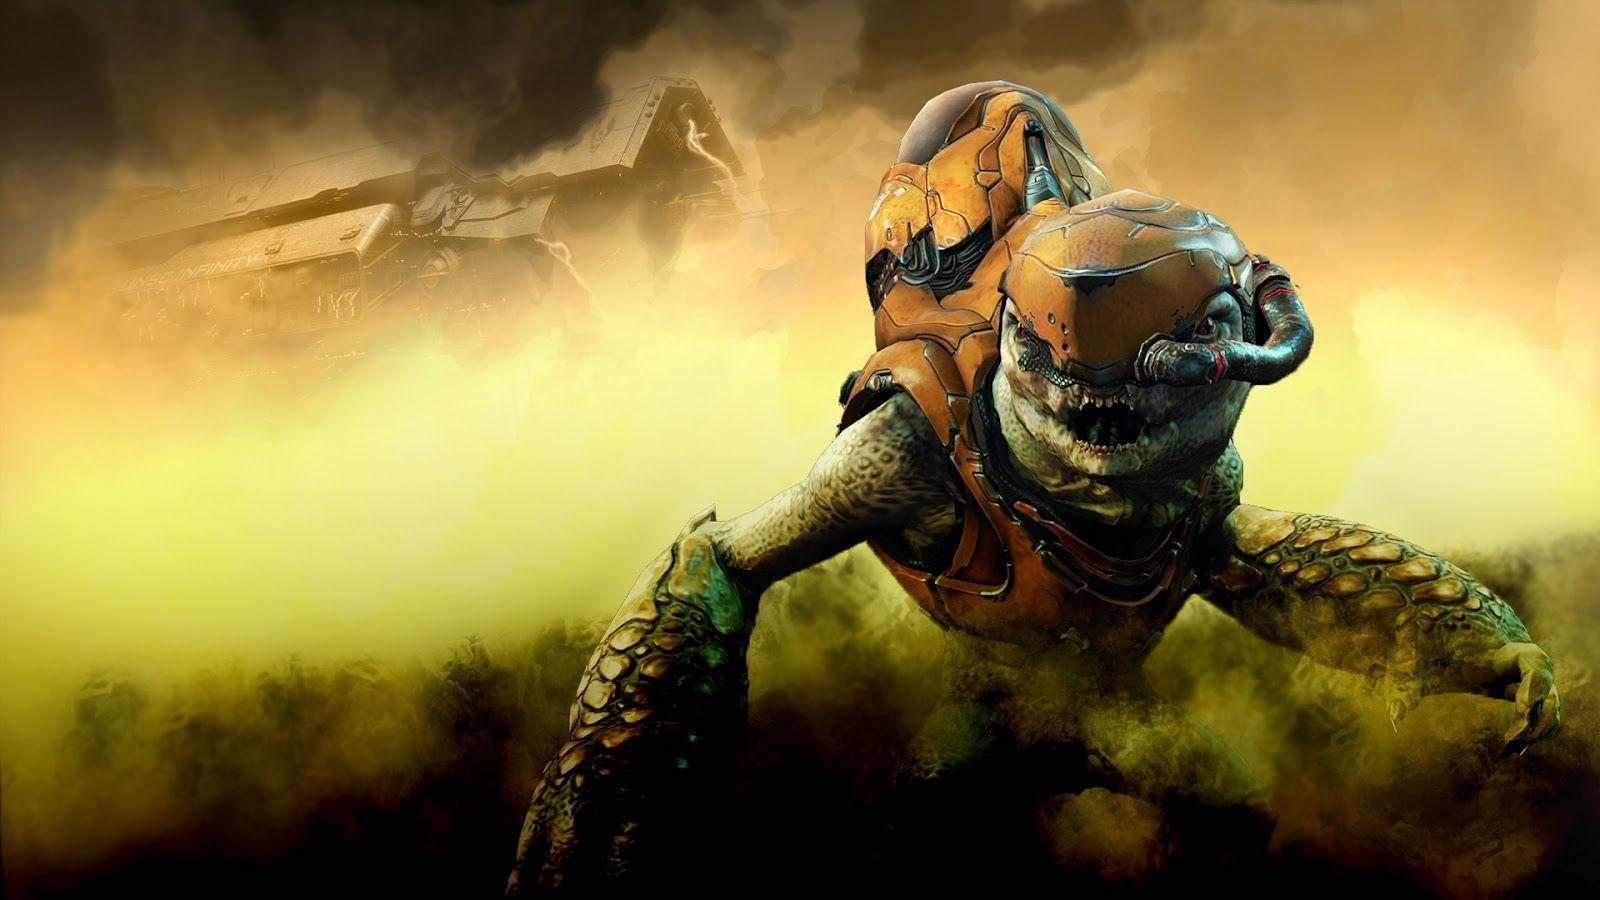 Collection Of Halo 4 Wallpapers 1600x900 HD Game Wallpapers